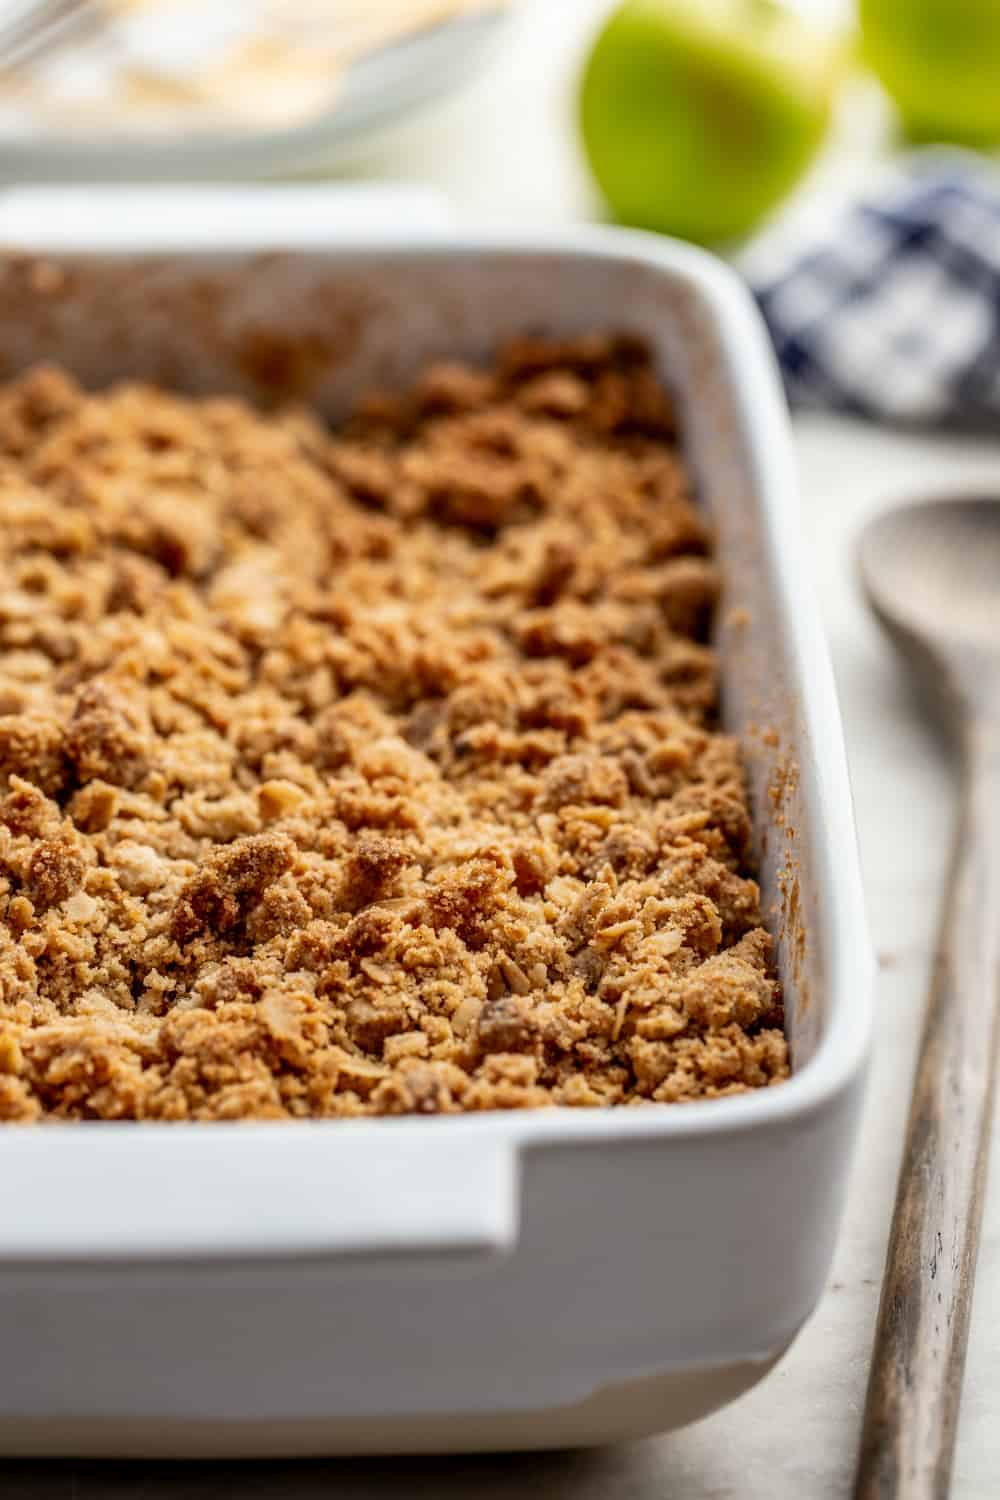 Baking dish of caramel apple crisp fresh from the oven